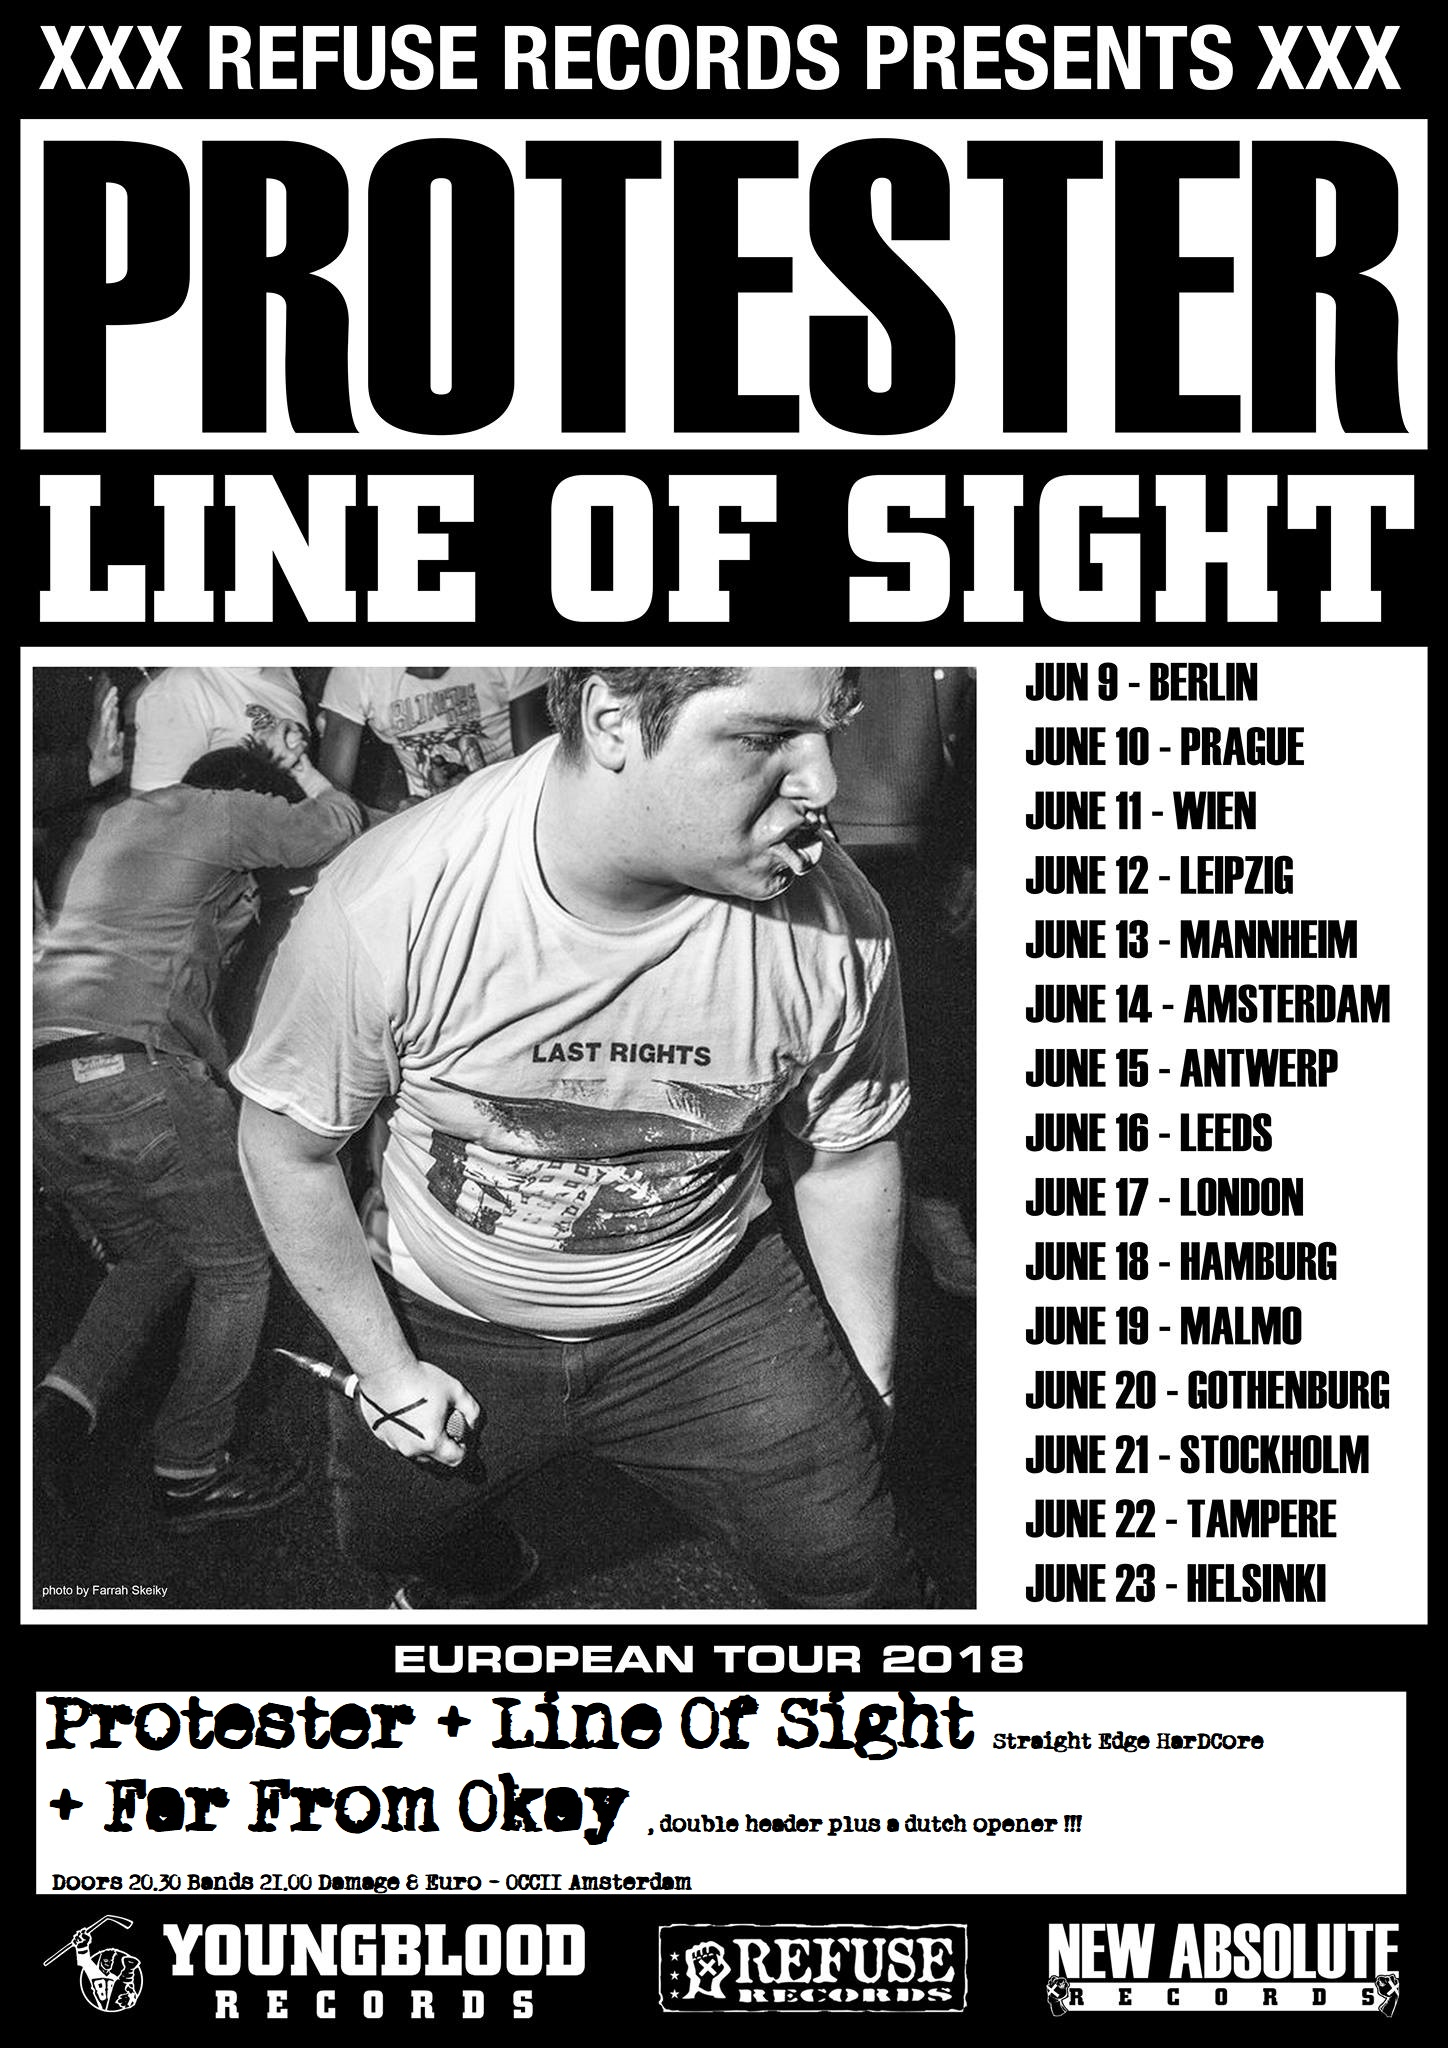 PROTESTER (US) + LINE OF SIGHT (US) + FAR FROM OKAY